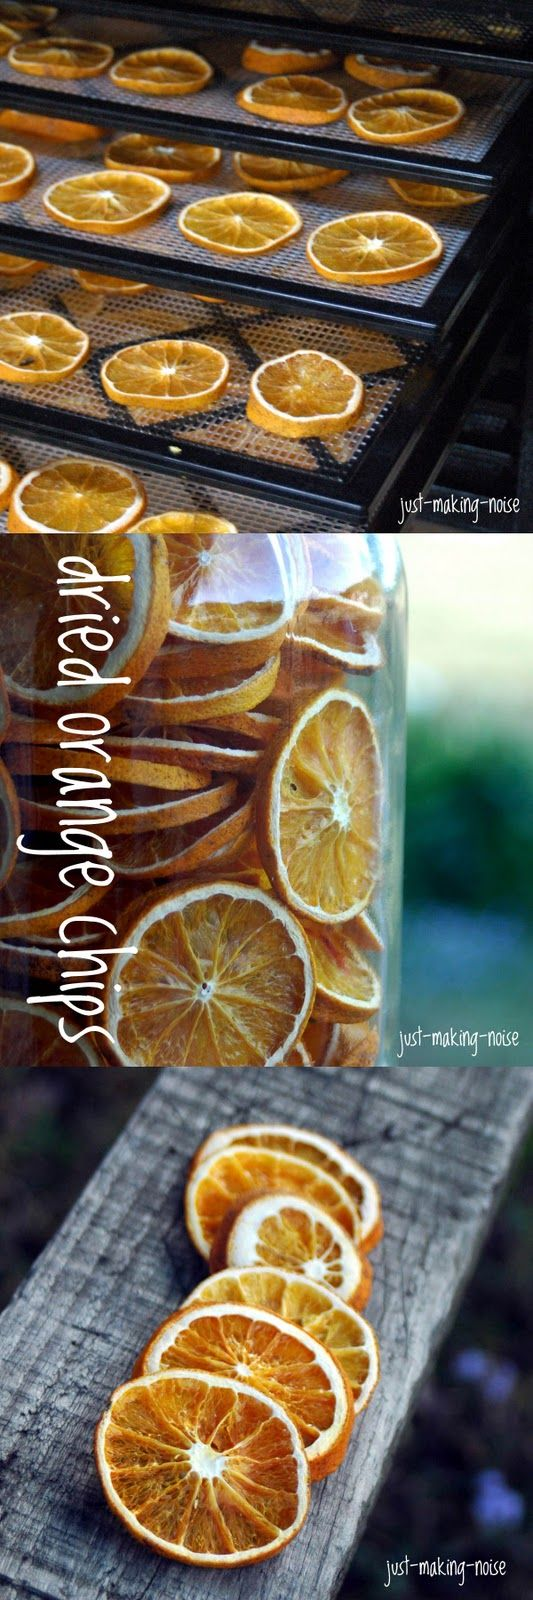 Crispy Orange Chips (a.k.a - Dehydrated Orange Slices) - great for garland, potpourri, food decor. The possibilities are endless!